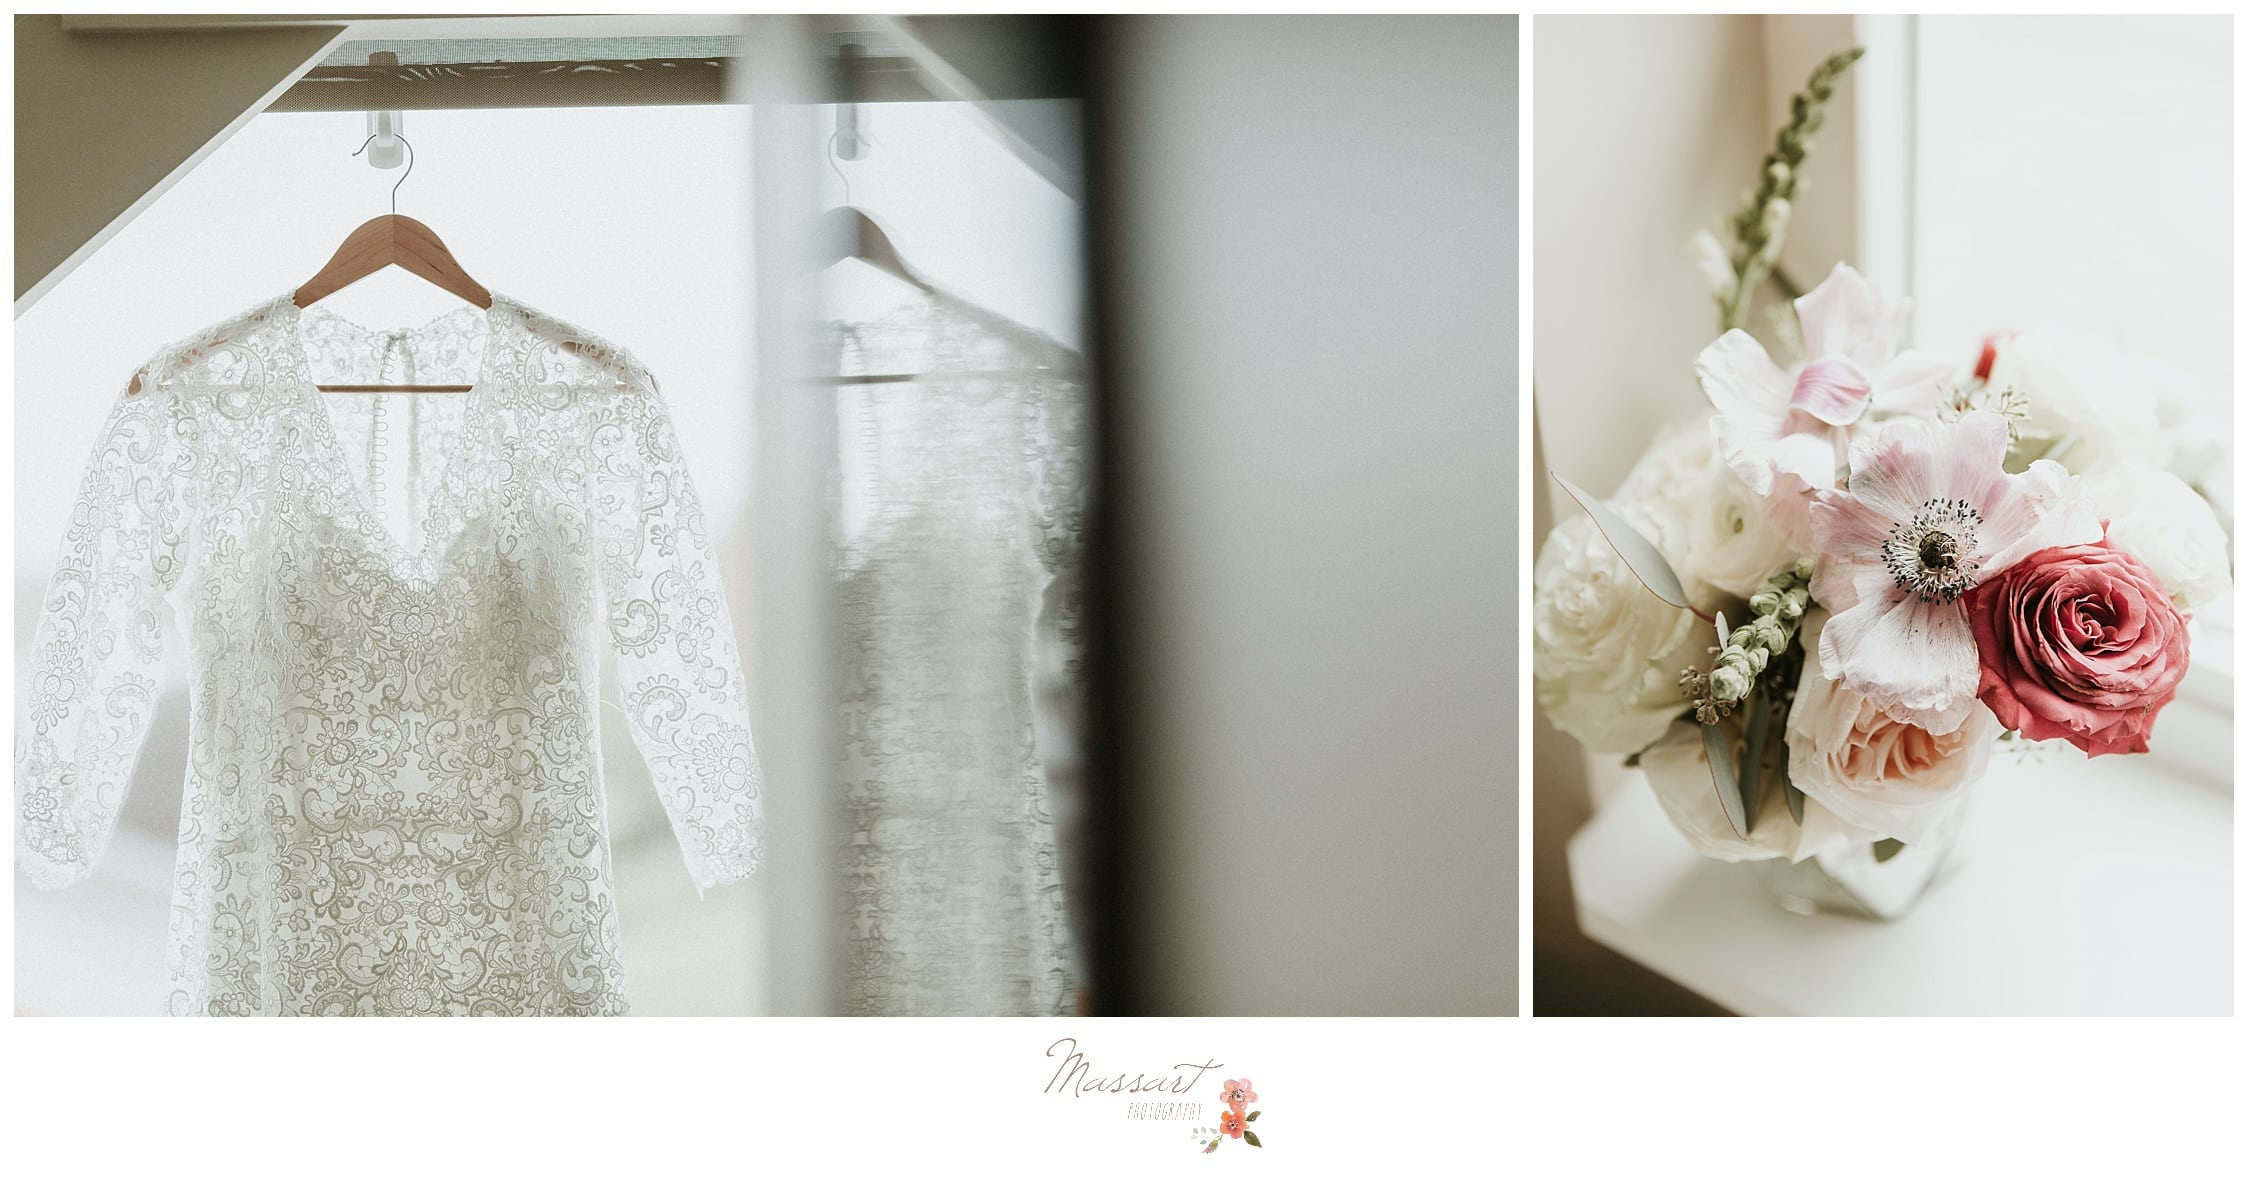 The wedding dress and bouquet at the atlantic resort in newport, RI captured by massart photographers of rhode island